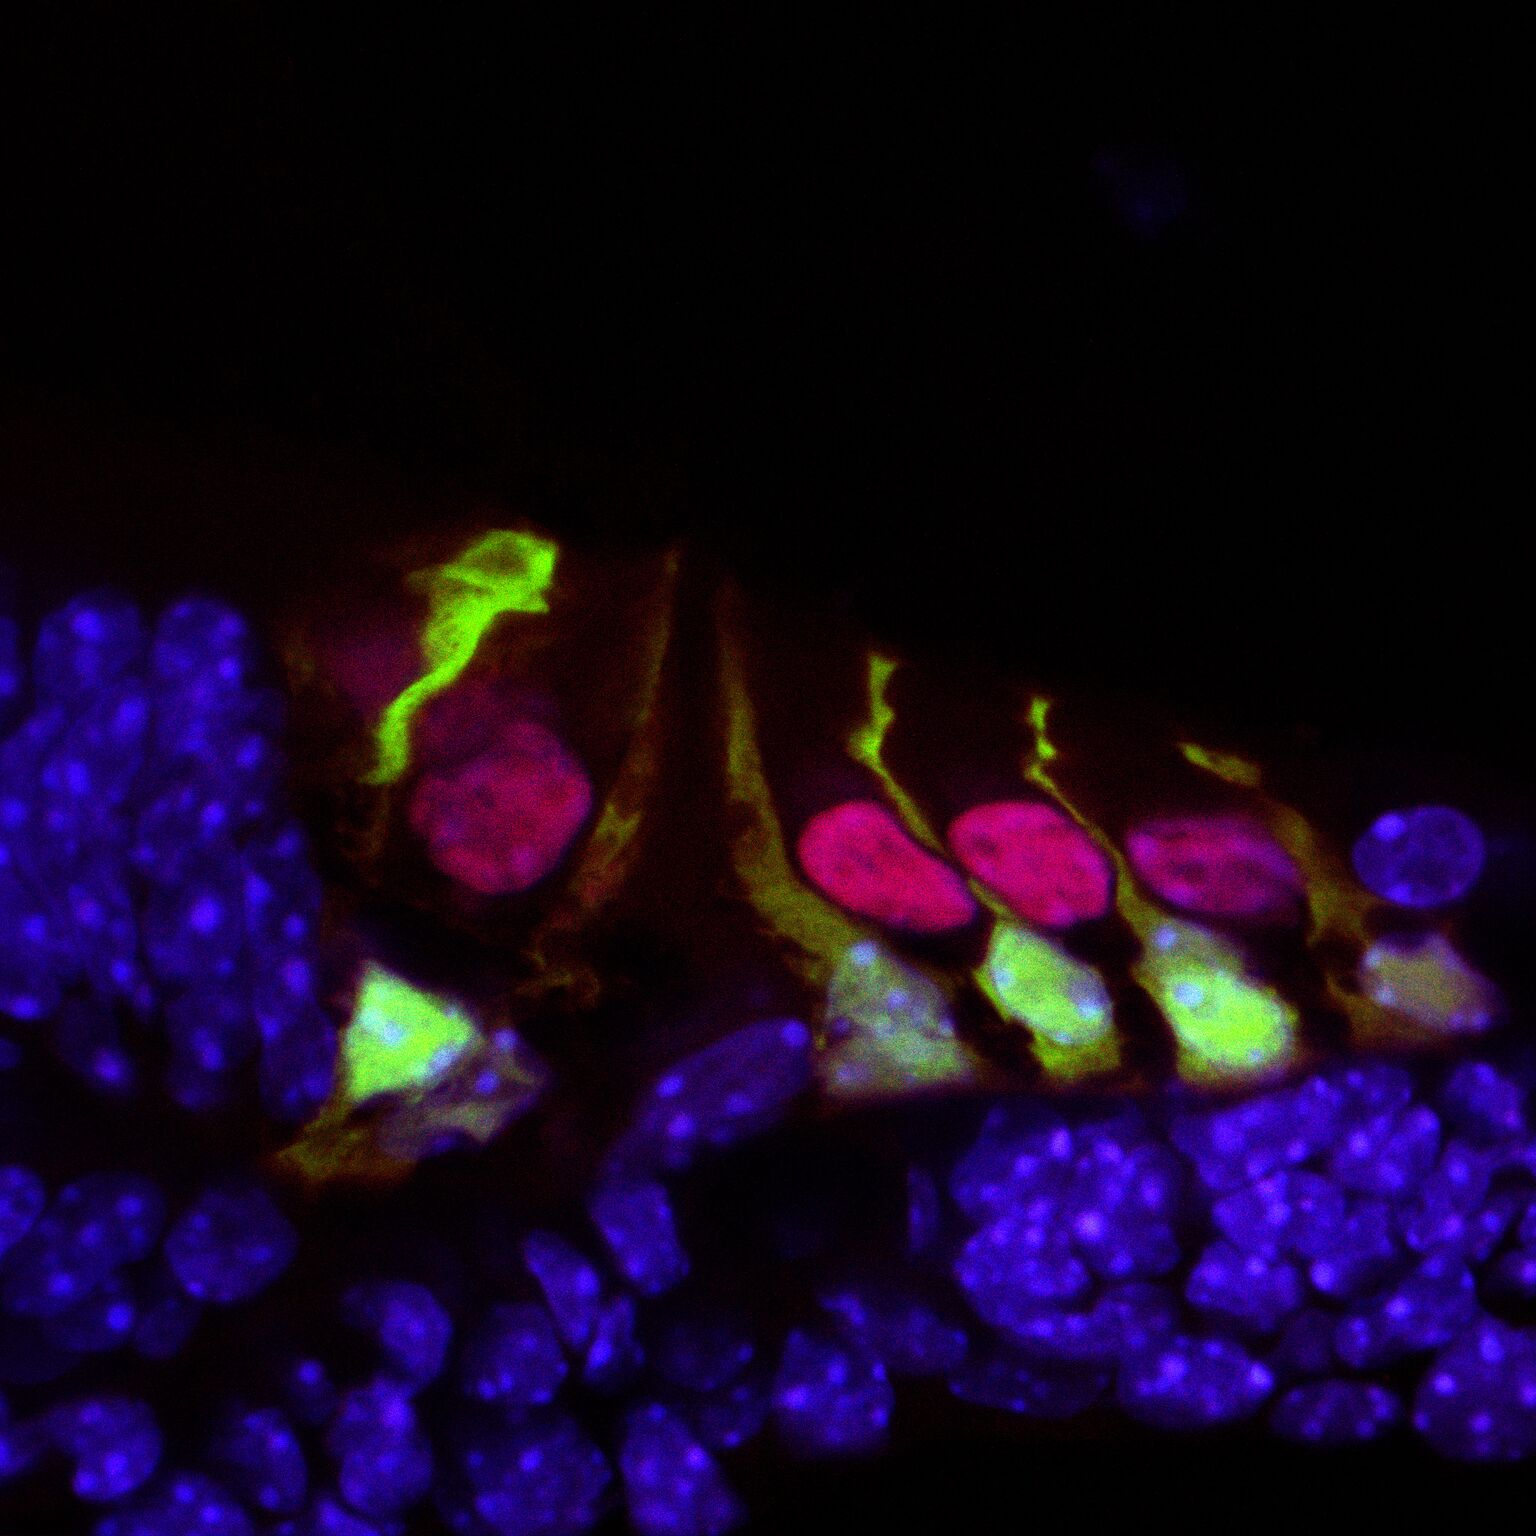 Hair cells in the mouse cochlea courtesy of the lab of Hearing Restoration Project (HRP) member Andy Groves, Ph.D., Baylor College of Medicine.